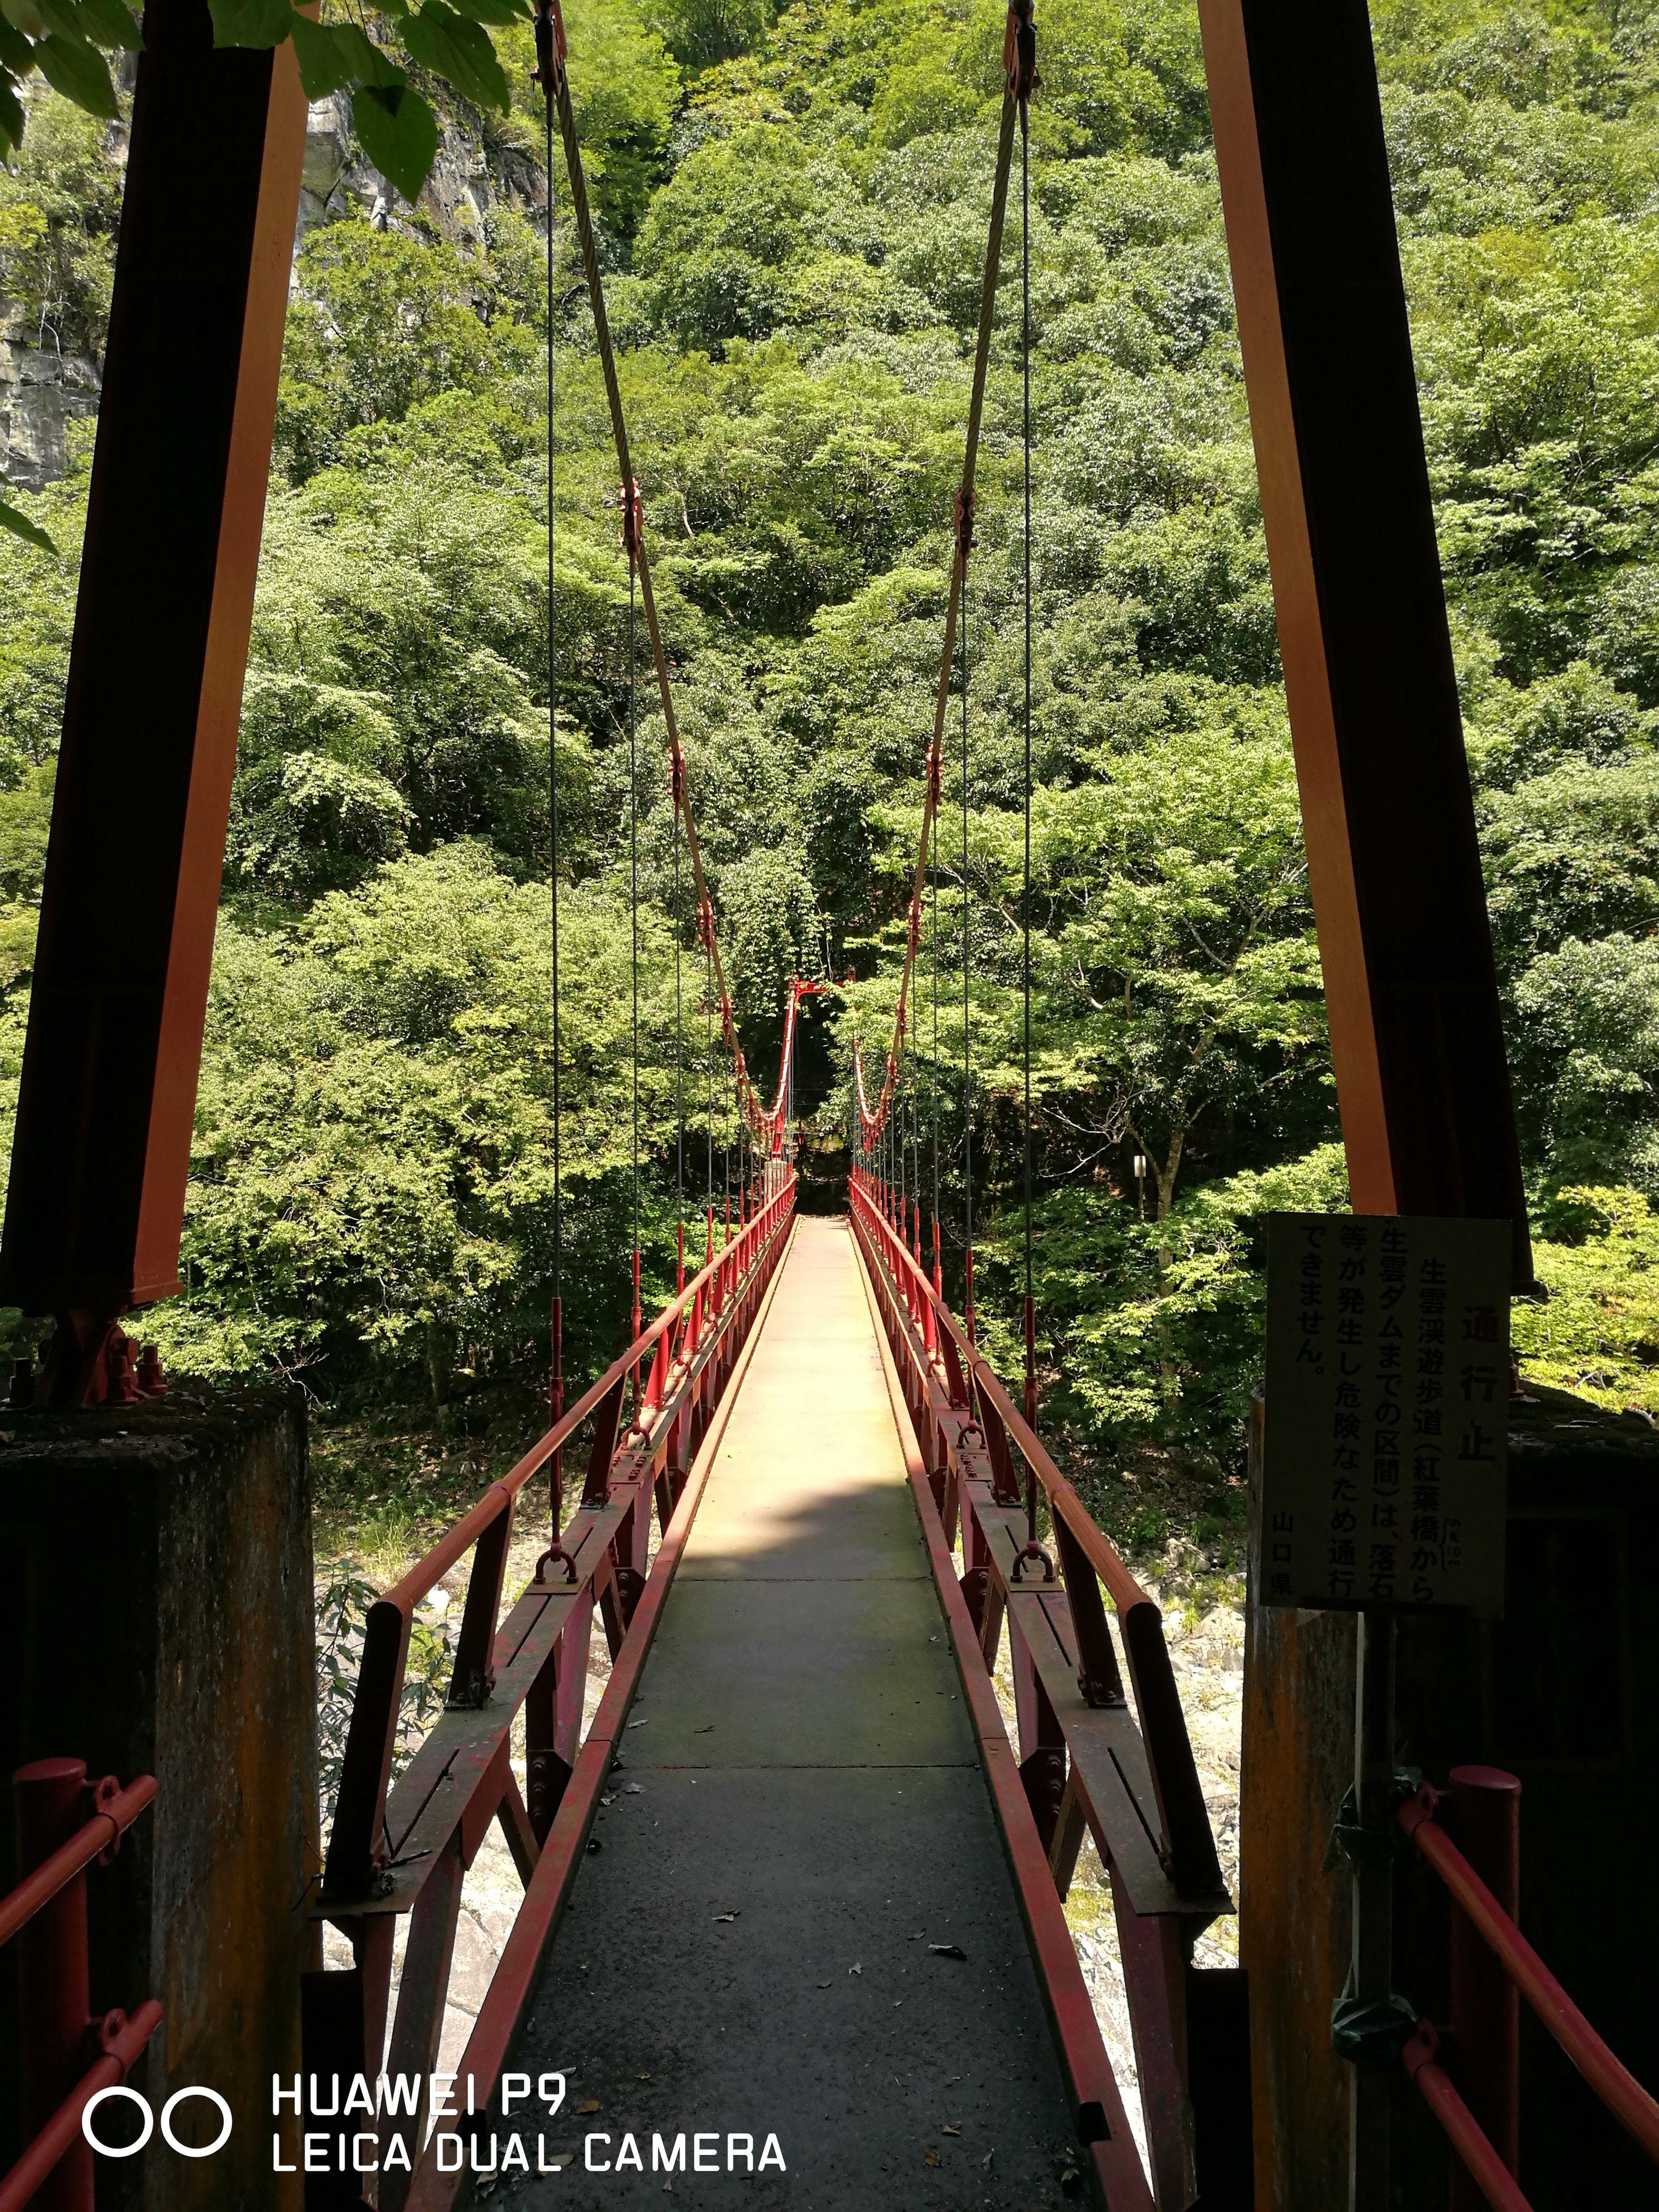 tree, railing, the way forward, architecture, green color, narrow, diminishing perspective, lush foliage, footbridge, growth, day, tranquil scene, bridge, outdoors, green, tranquility, solitude, scenics